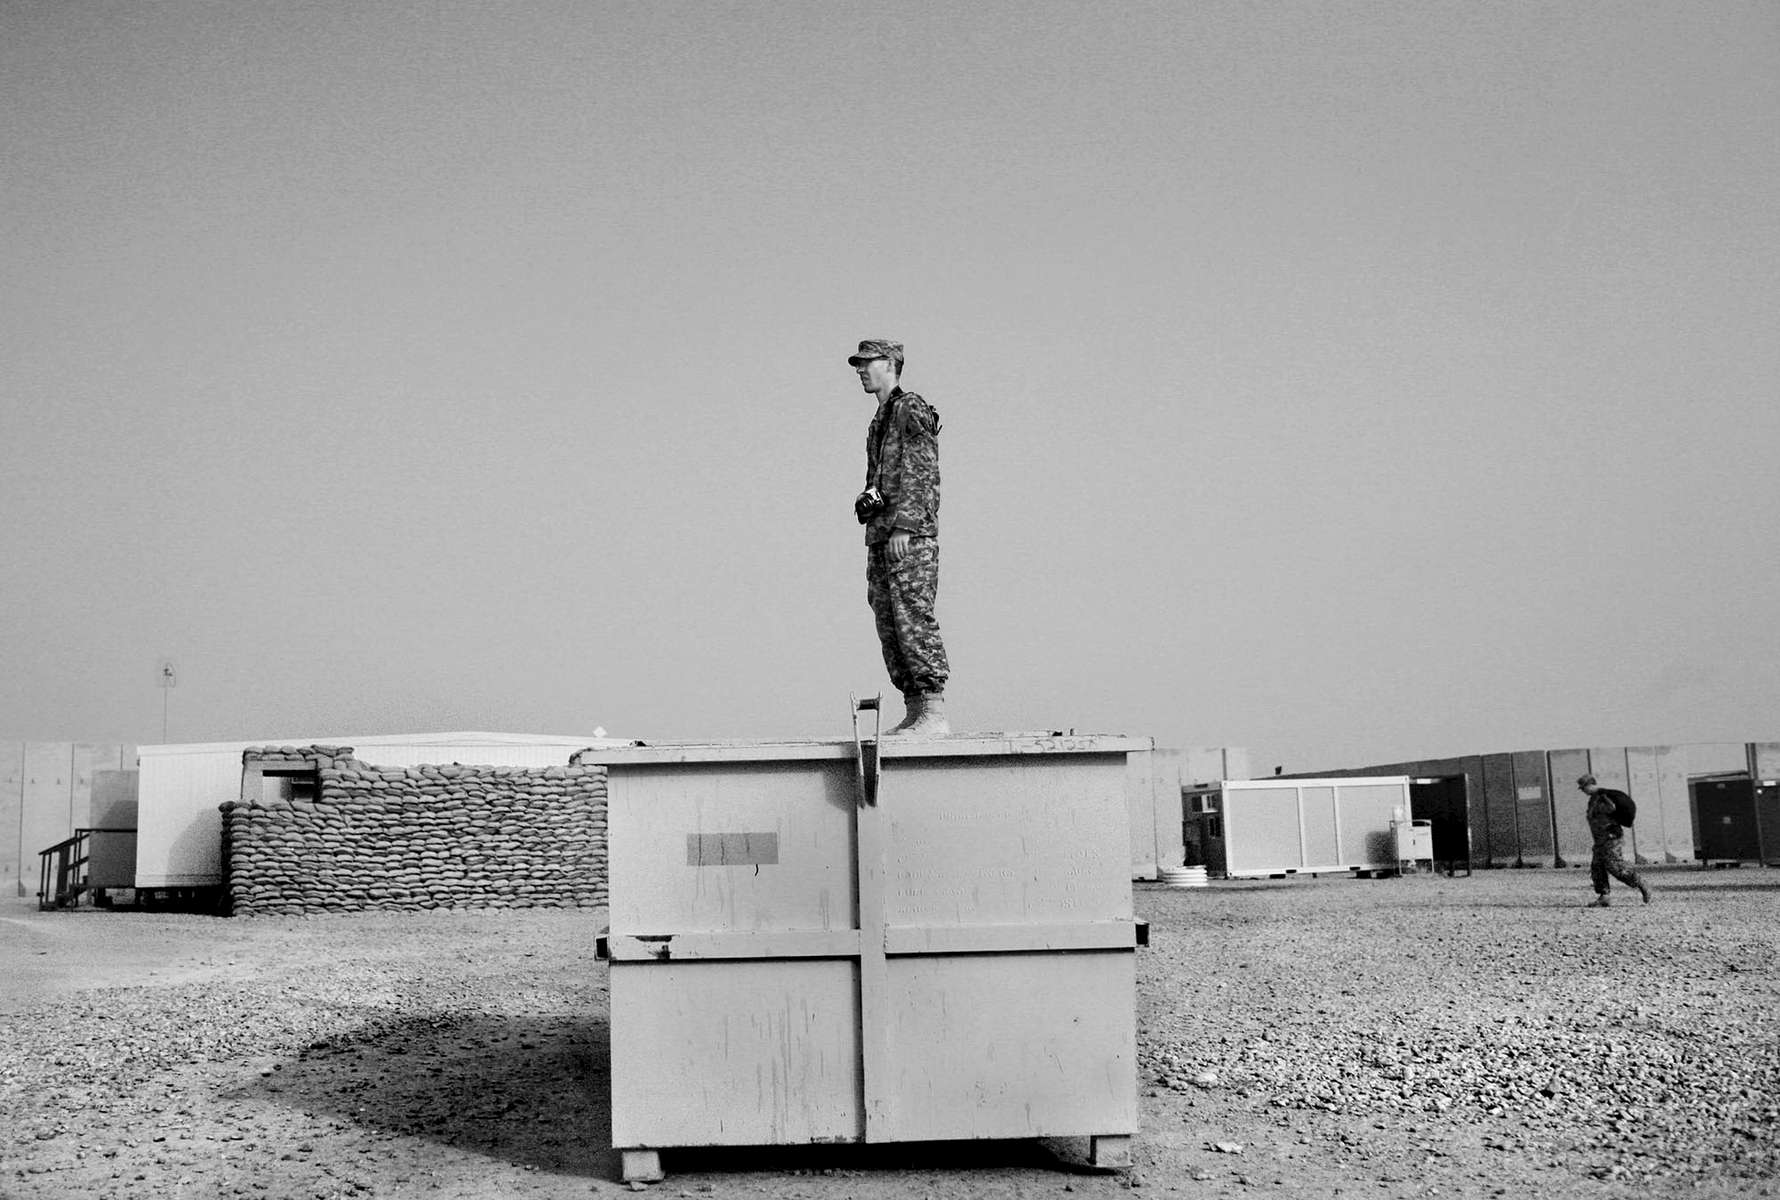 A soldier with the Virginia National Guard stands on top of a garbage container to try to get a better photograph at Camp Adder in Iraq.